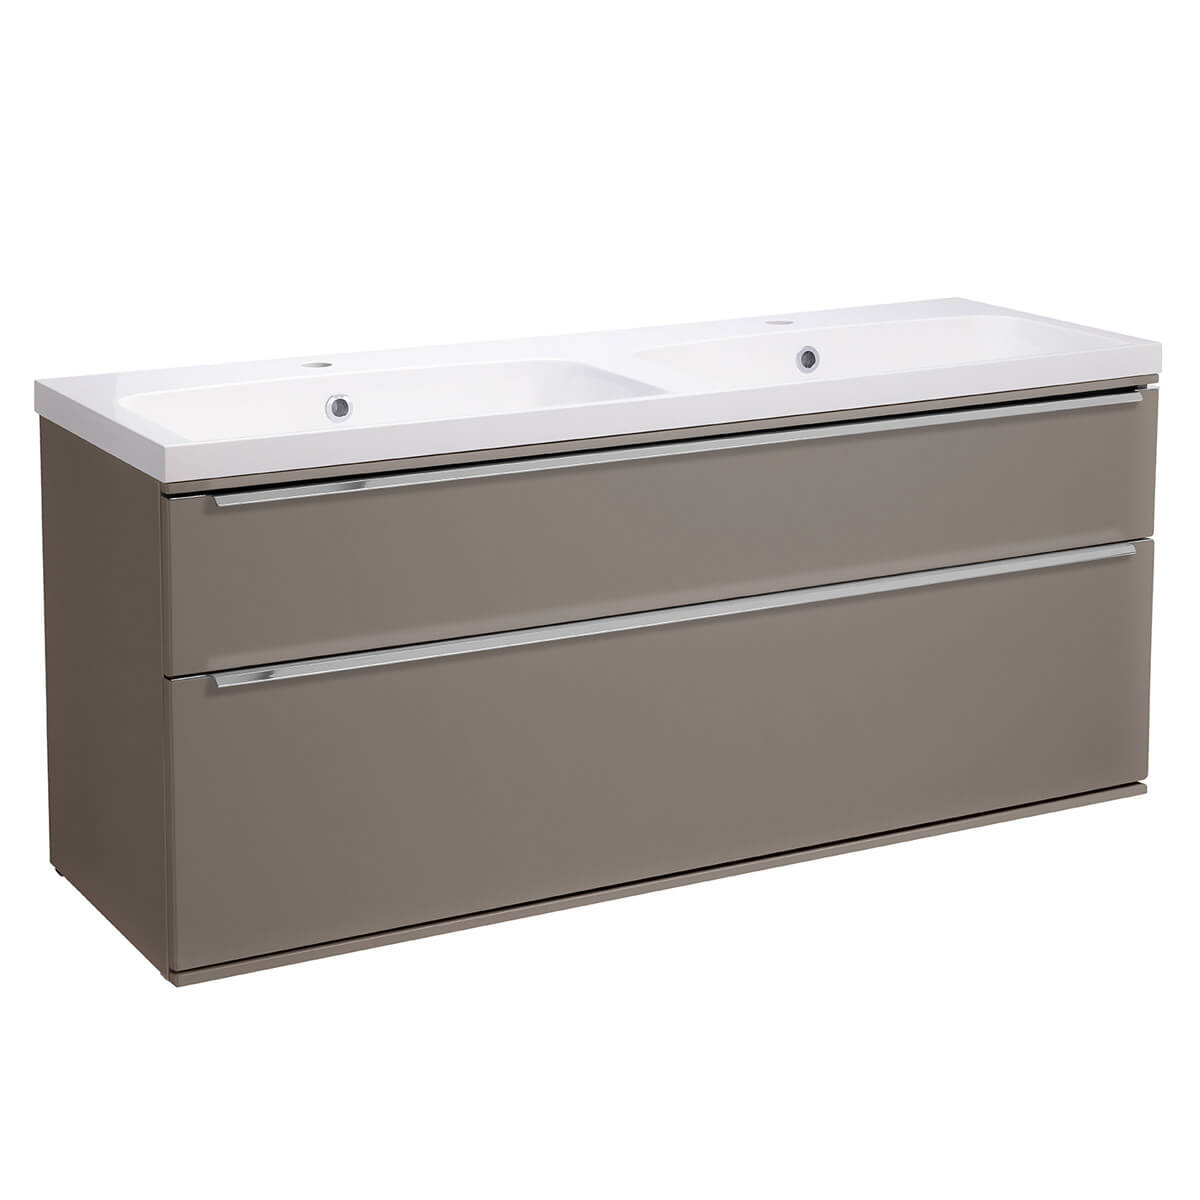 1200mm Vanity Units Roper Rhodes Scheme 1200mm Wall Mounted Vanity Unit